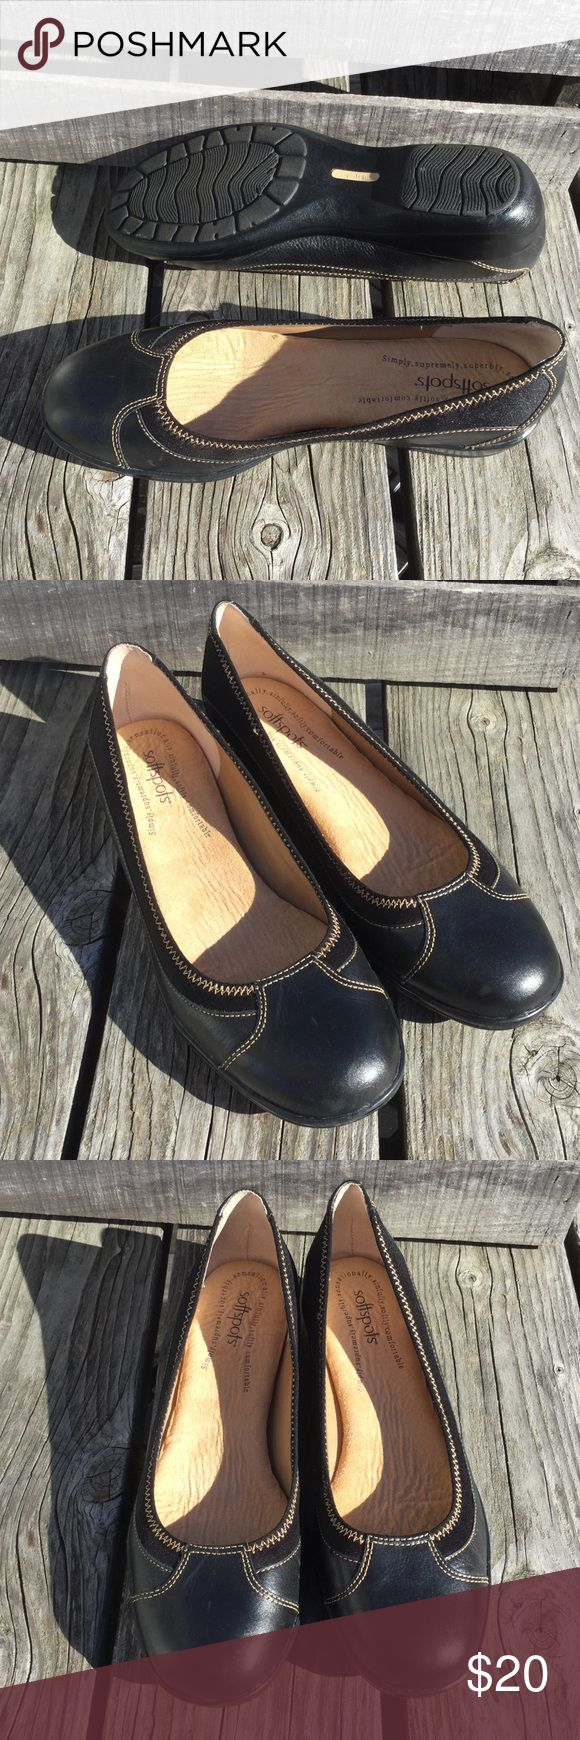 🆕List! Softspots Black Leather Flats! EUC! Stylish and comfortable! Thick insole. Contrast stitching. Low wedge ballerina style. Size 10. Great condition! Softspots Shoes Flats & Loafers